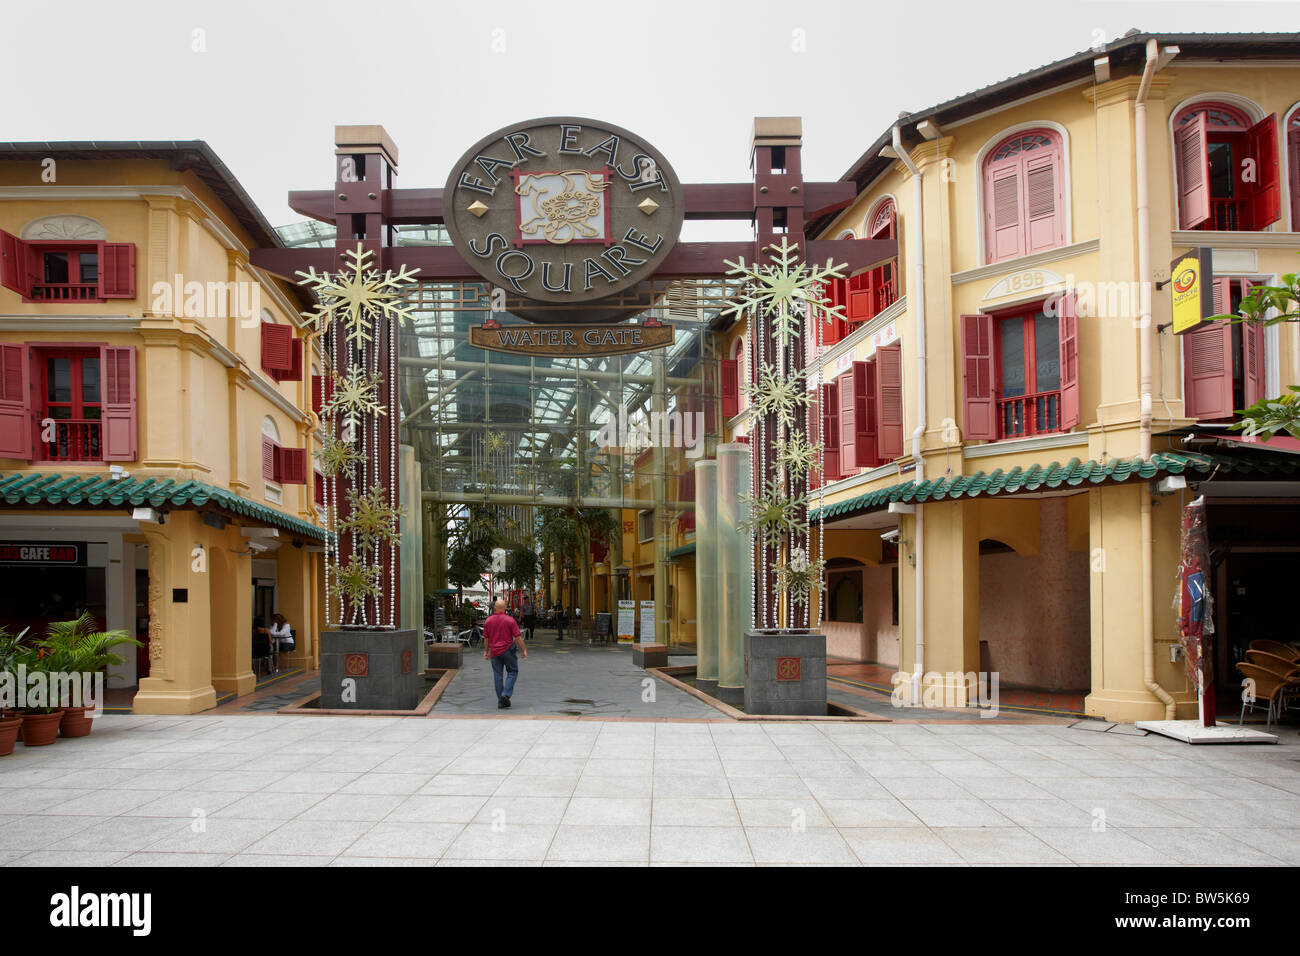 Far East Square shopping mall, Chinatown, Singapur Imagen De Stock